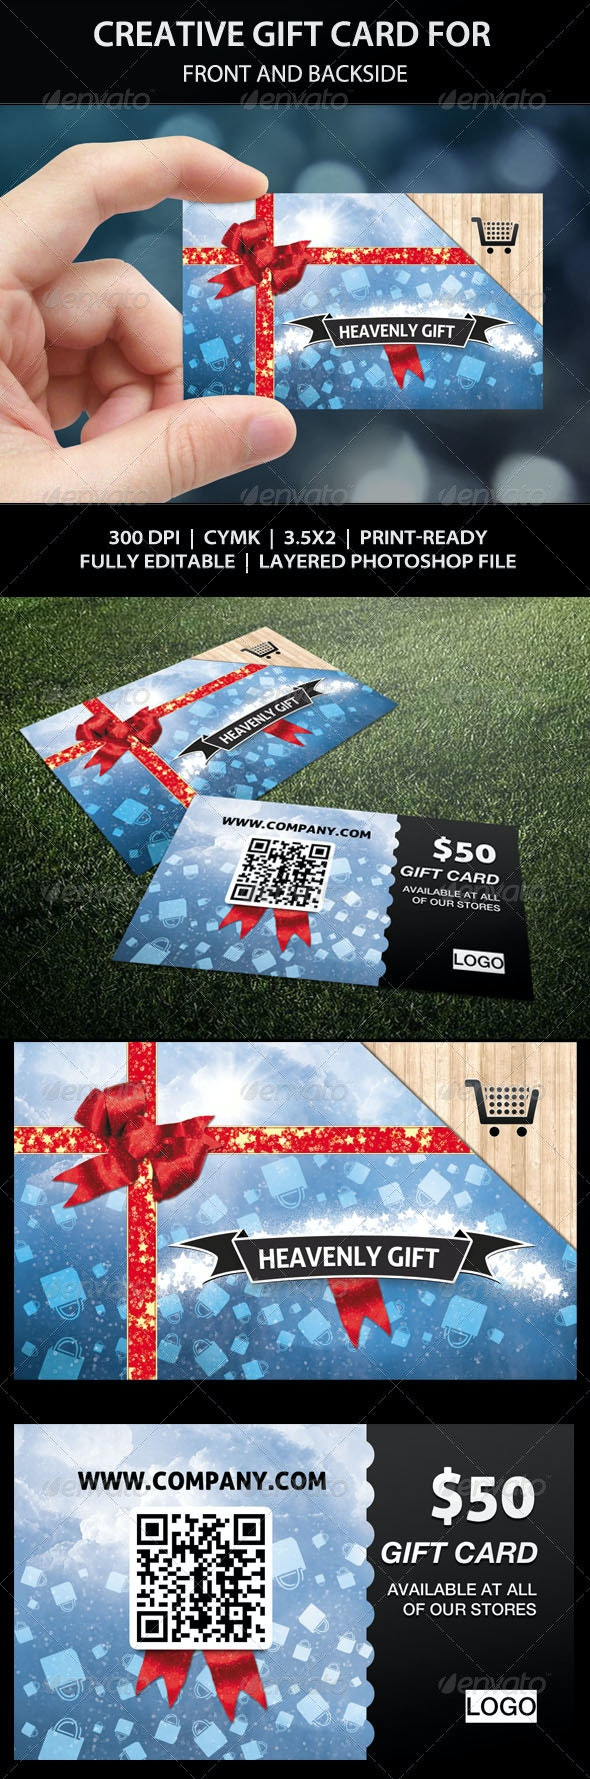 Creative Gift Card - Coupon - Birthday Present - Loyalty Cards Cards & Invites